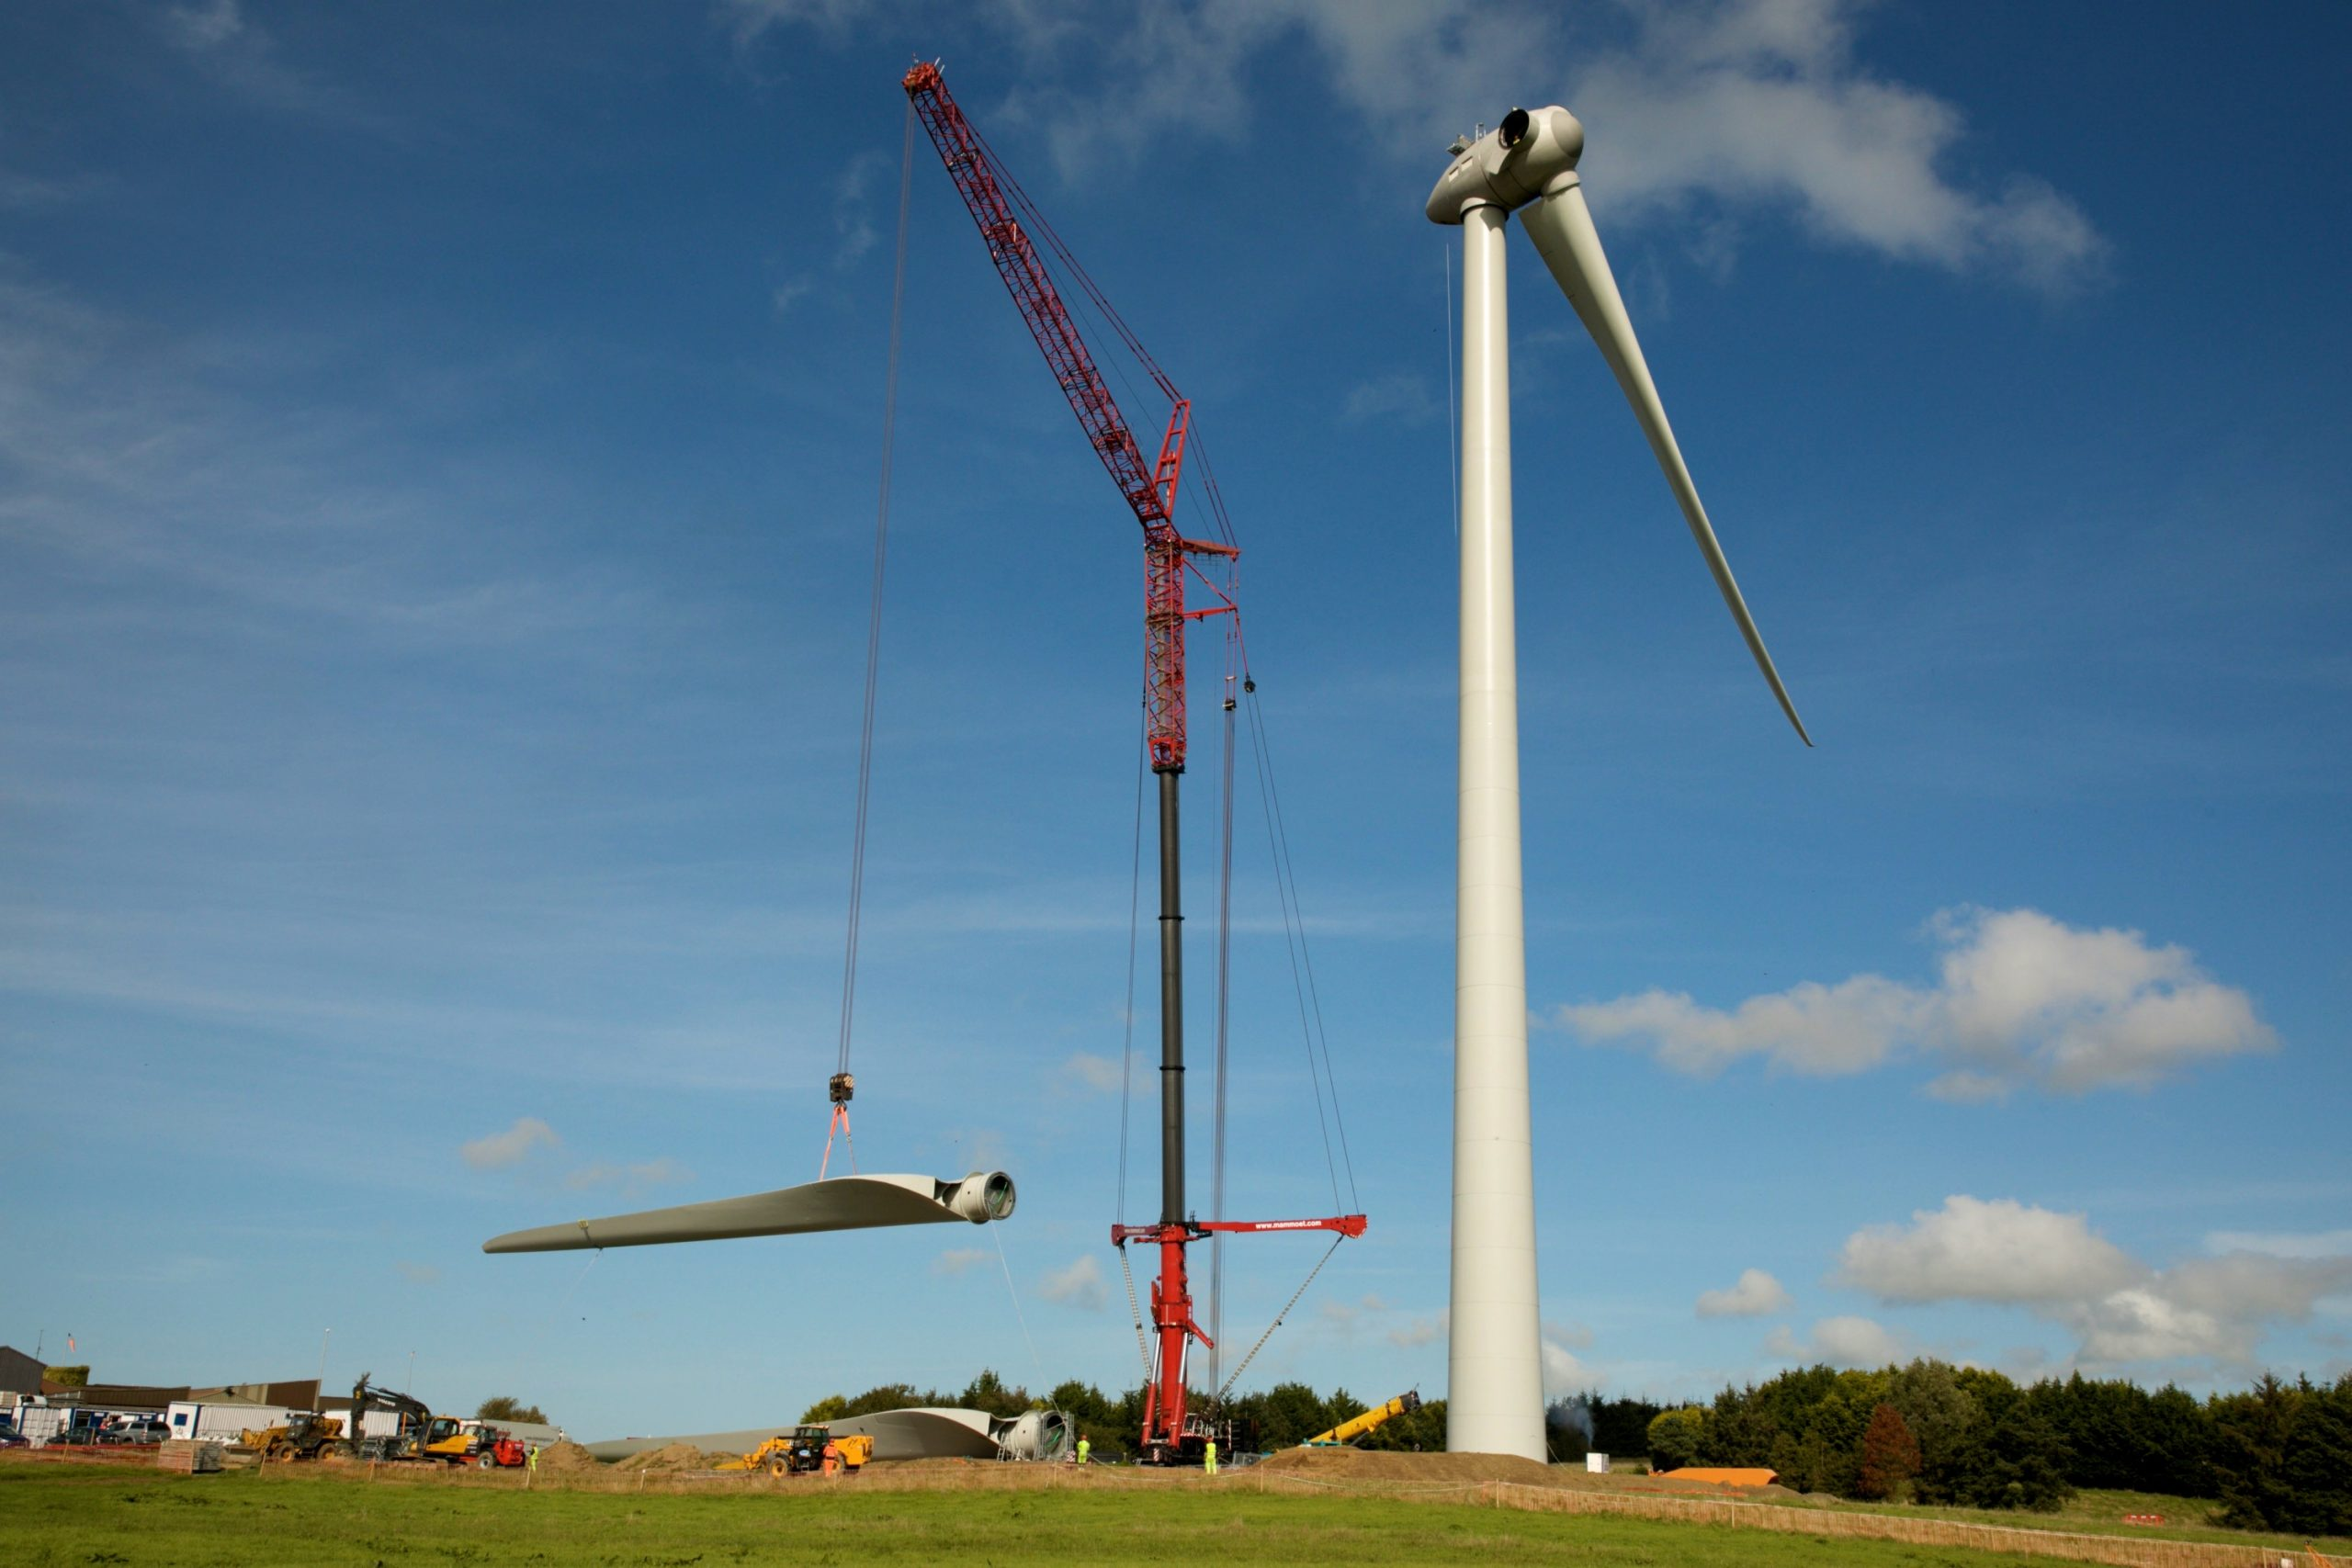 Wind Farm Construction Photographer Companies